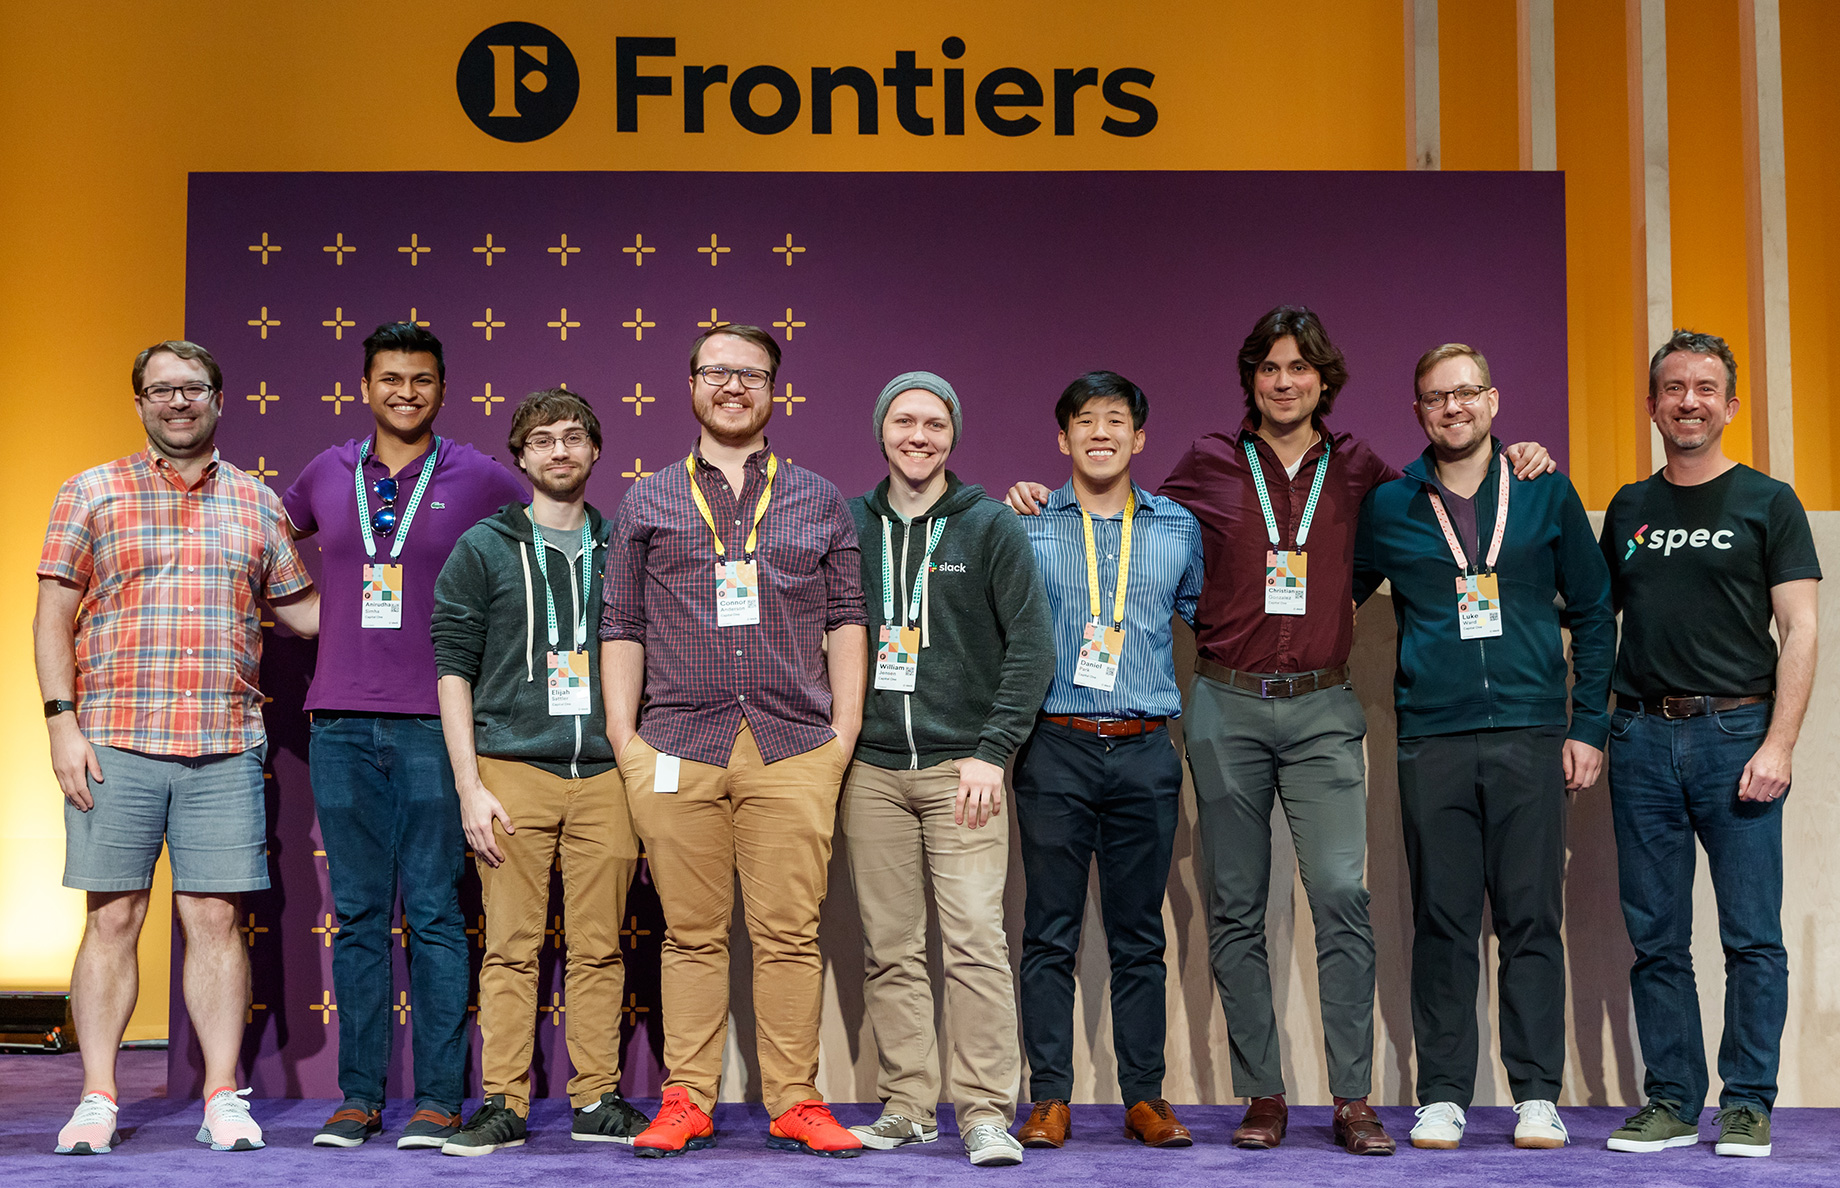 slackathon frontiers 2019 capital one winners